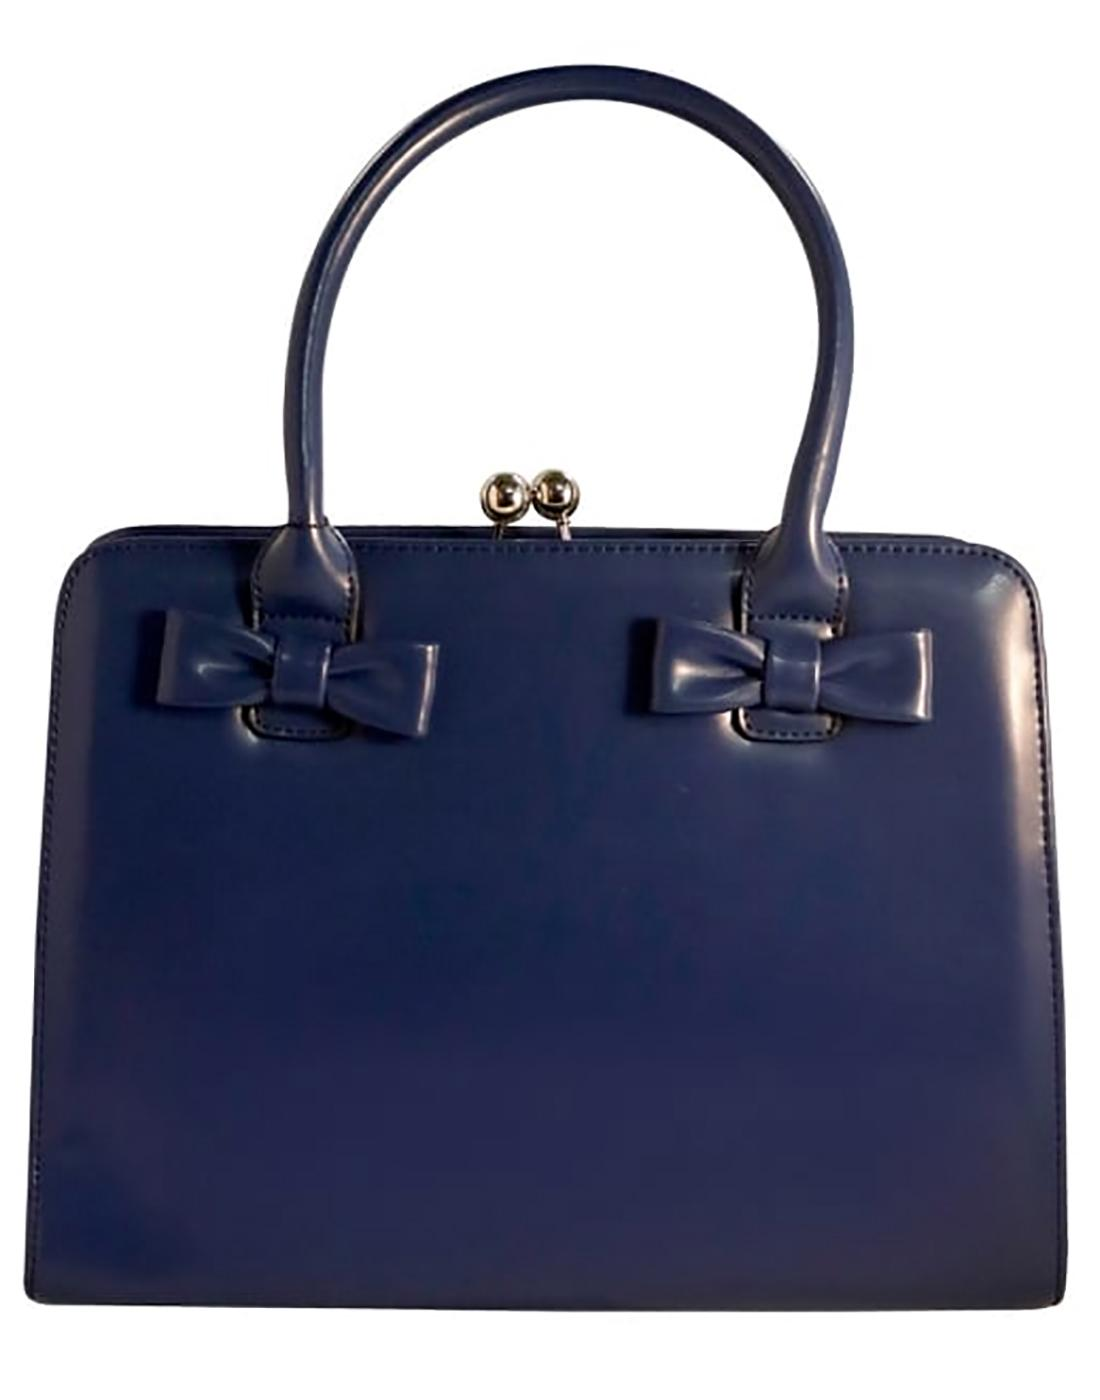 Jessica COLLECTIF Retro 1950s Bow Handbag in Navy